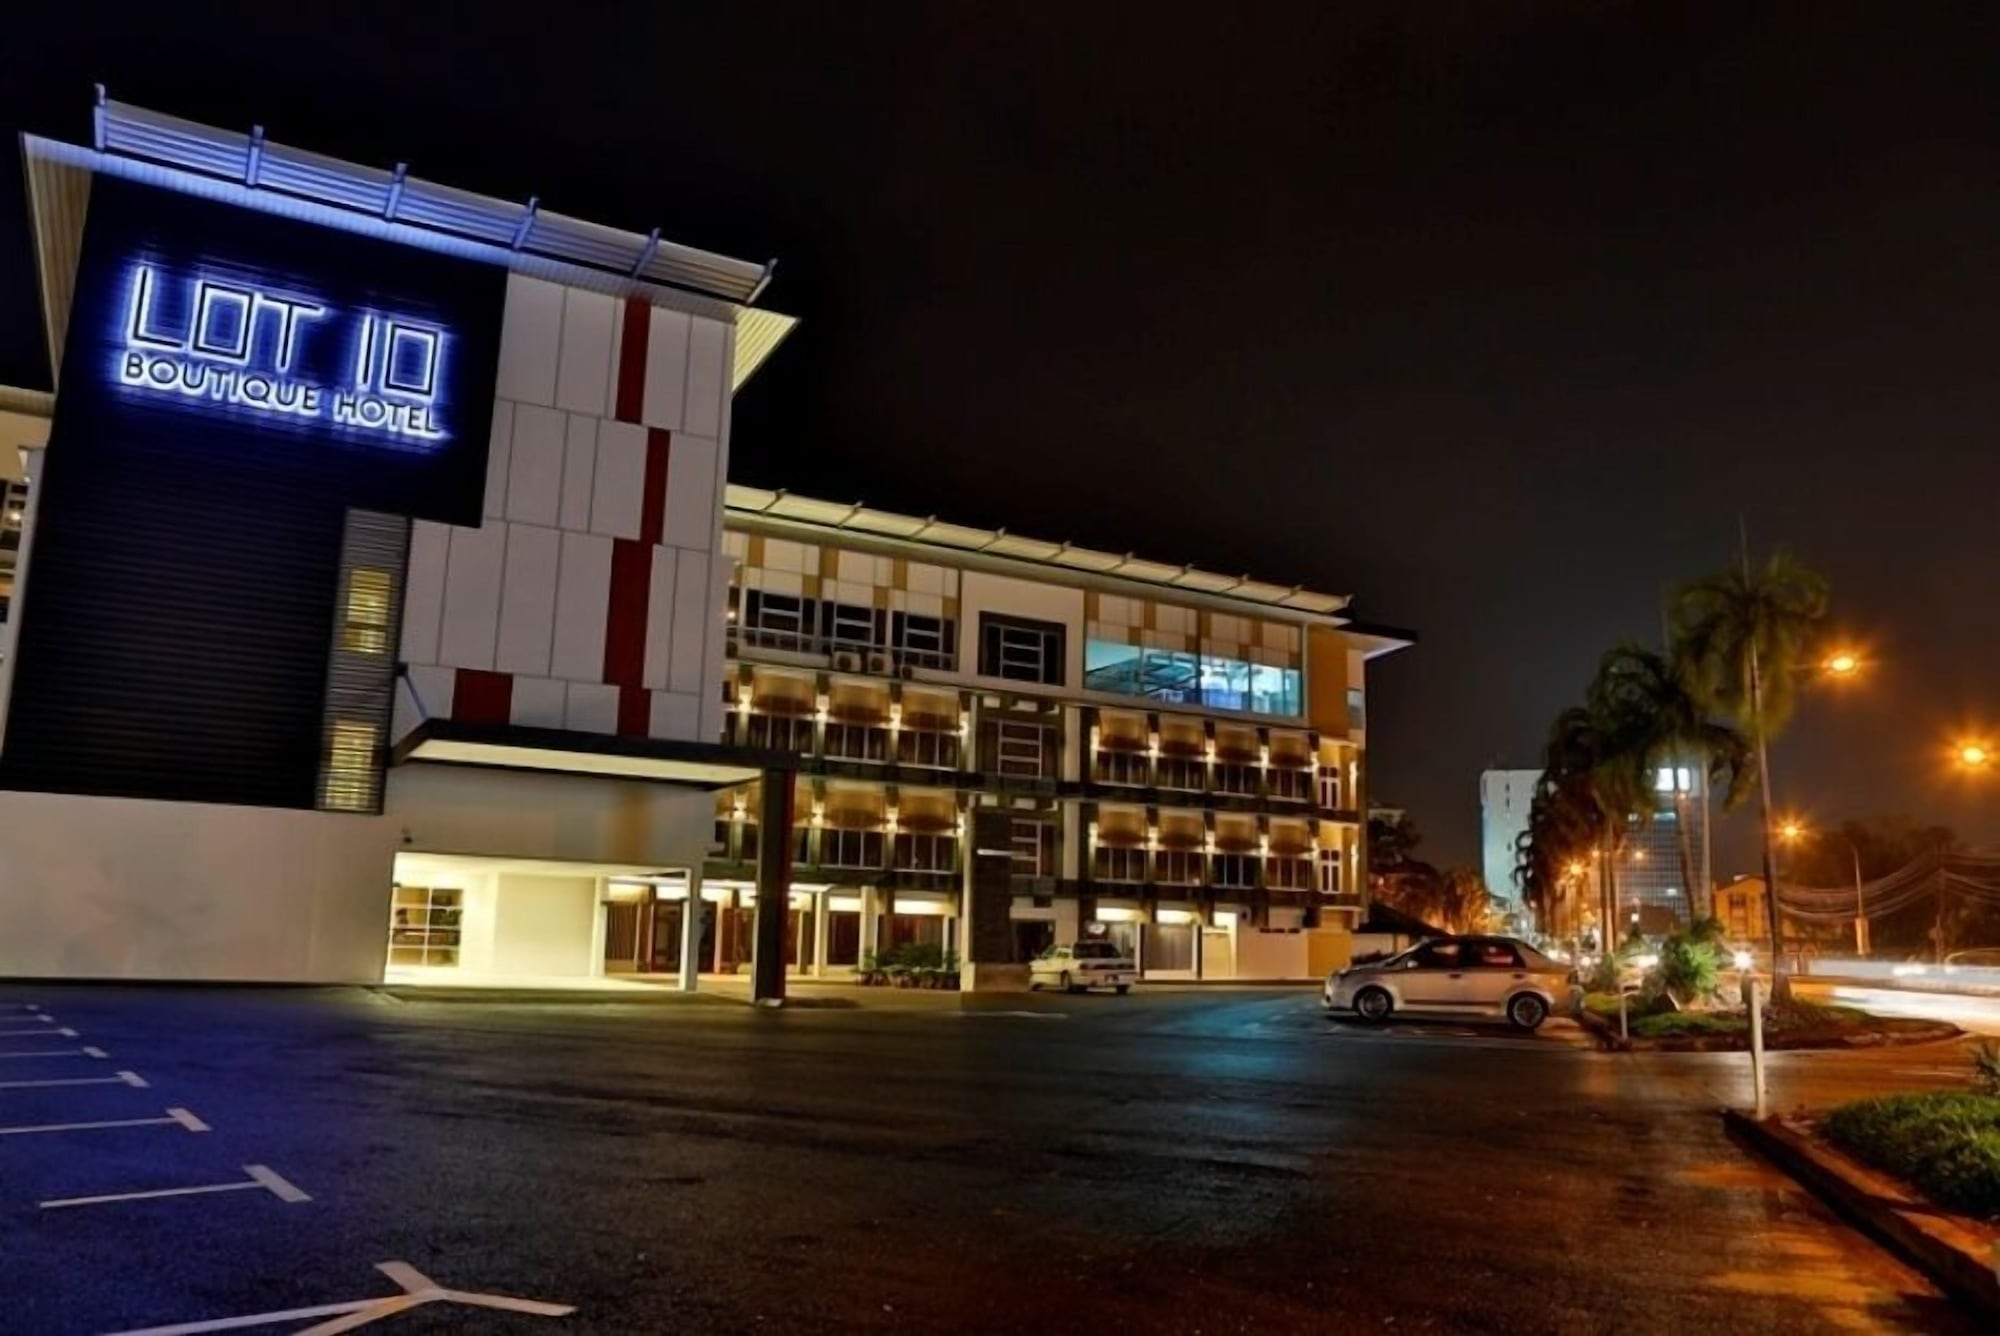 Lot 10 Boutique Hotel Kuching, Kuching